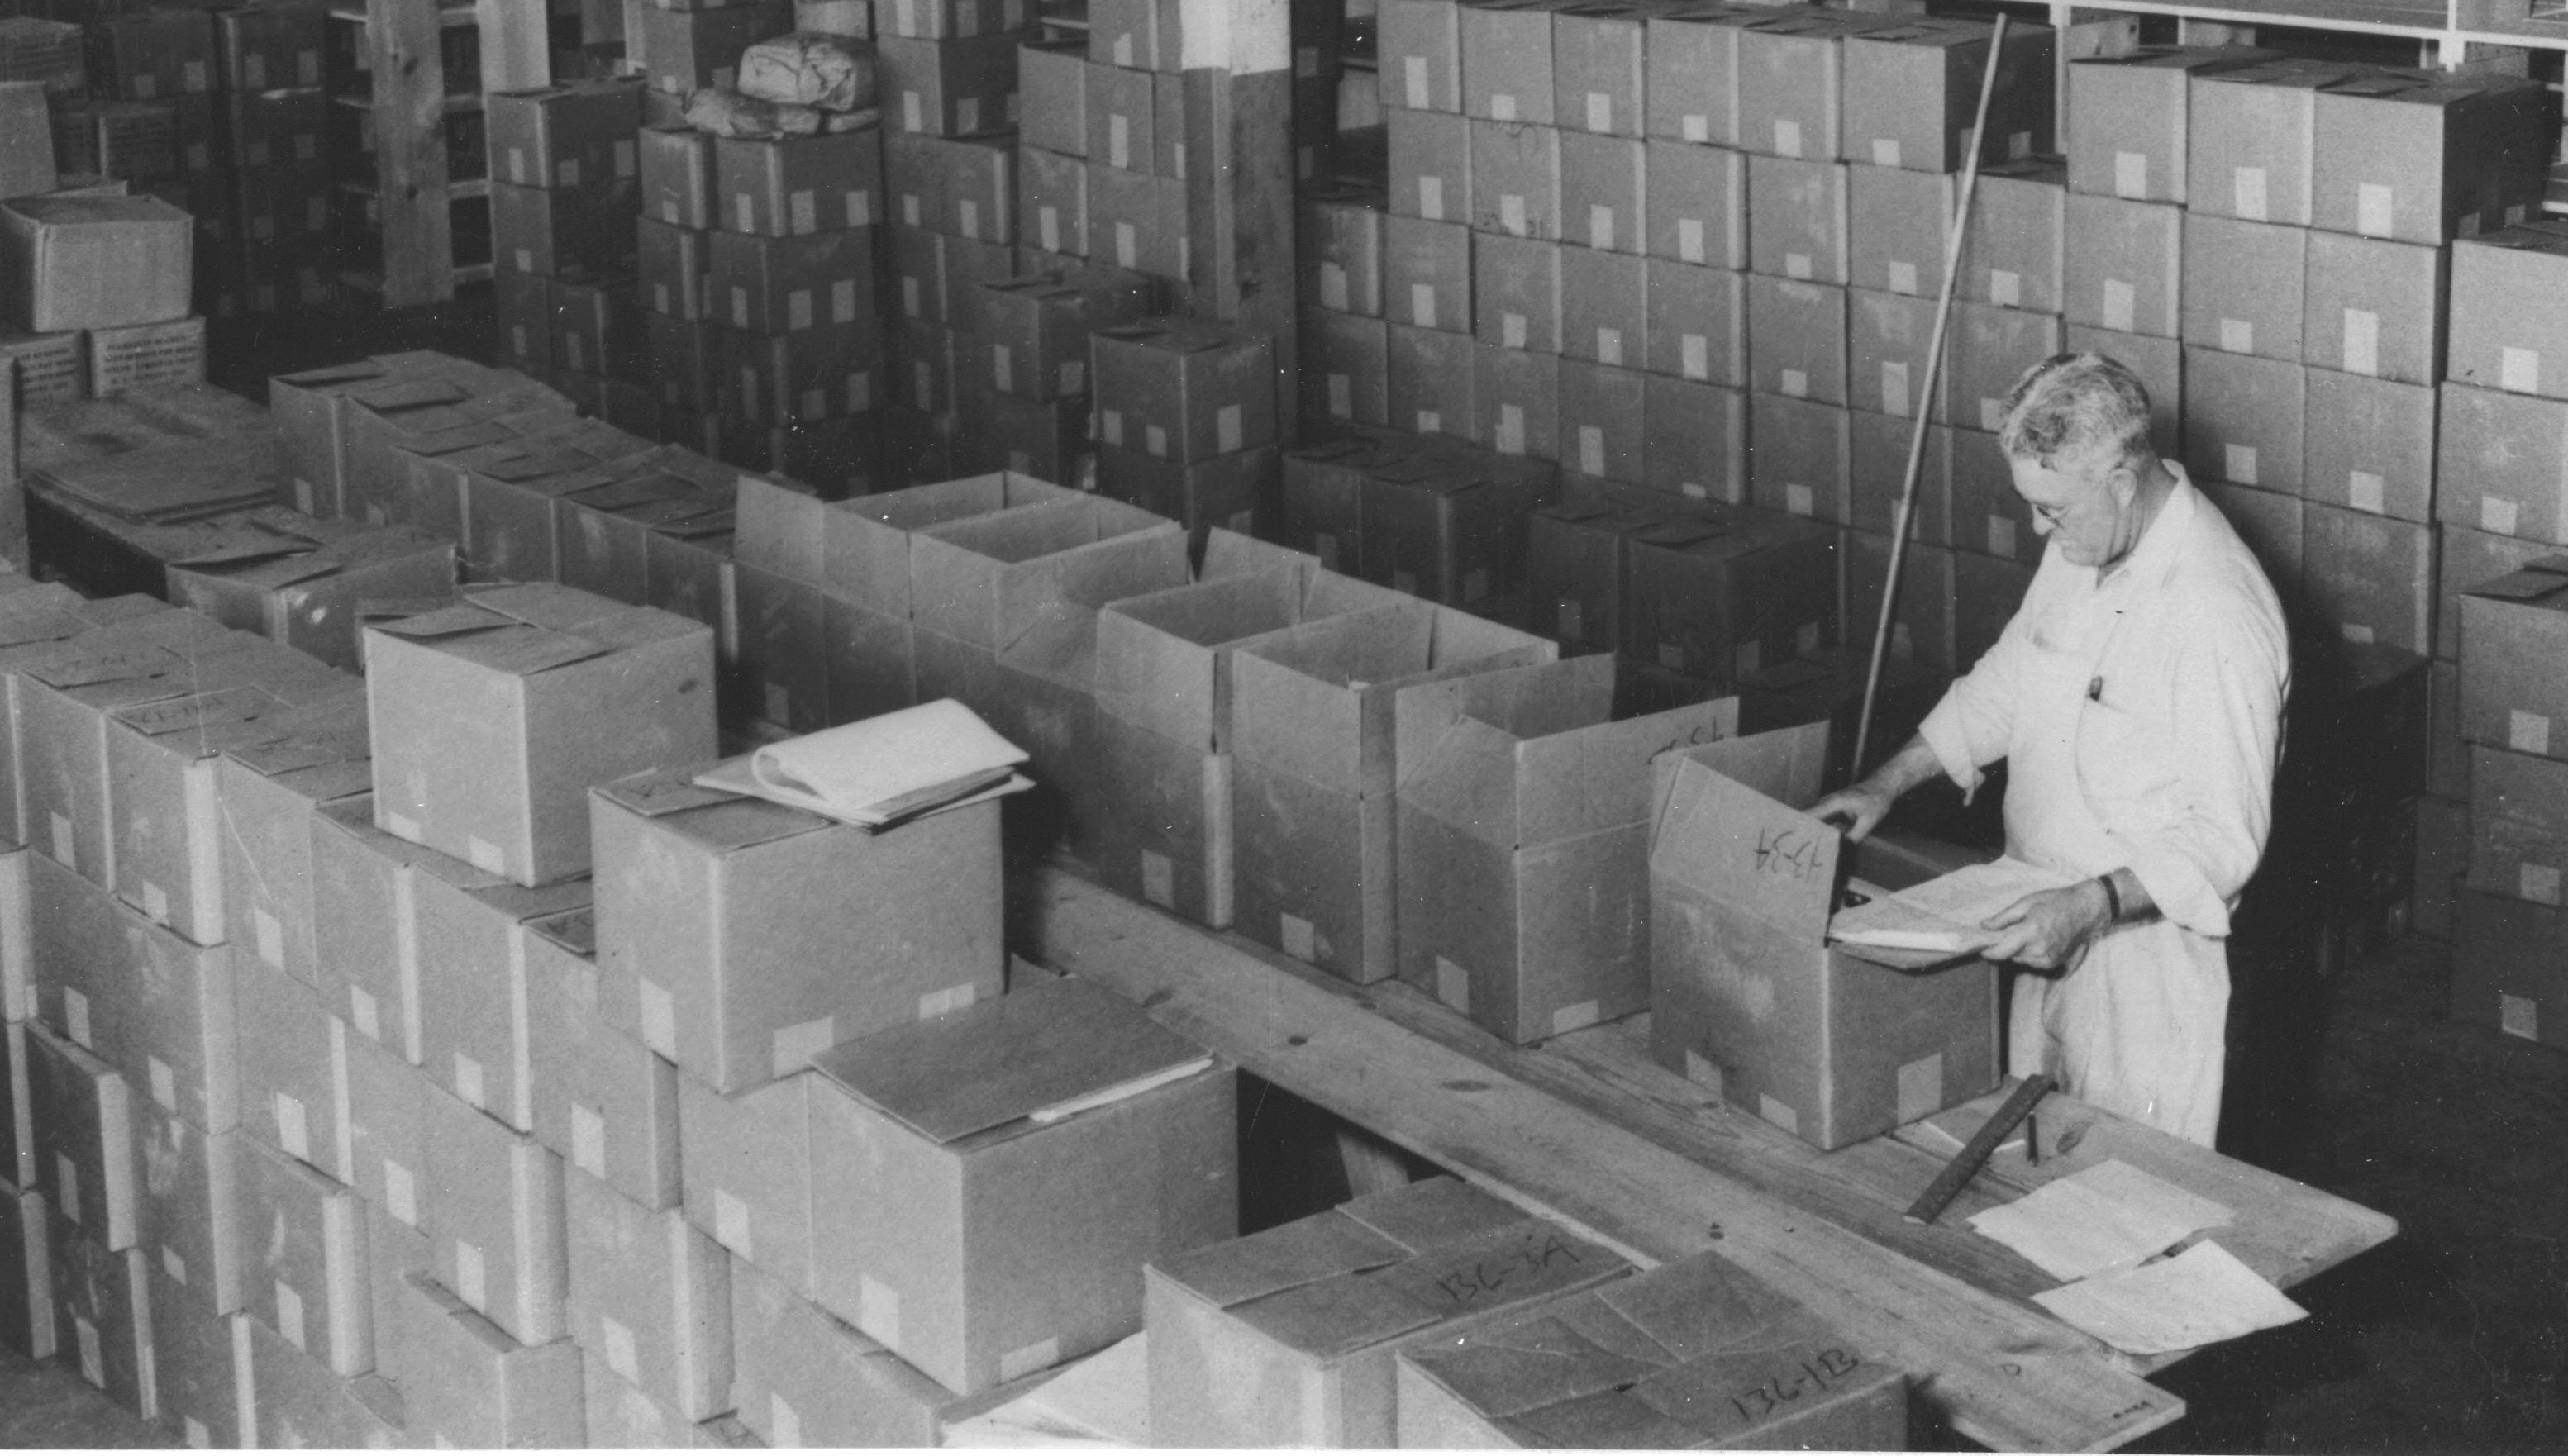 64-na-1-285-inspecting-records-in-alexandria-virginia-frc-aug-29-1952-cropped